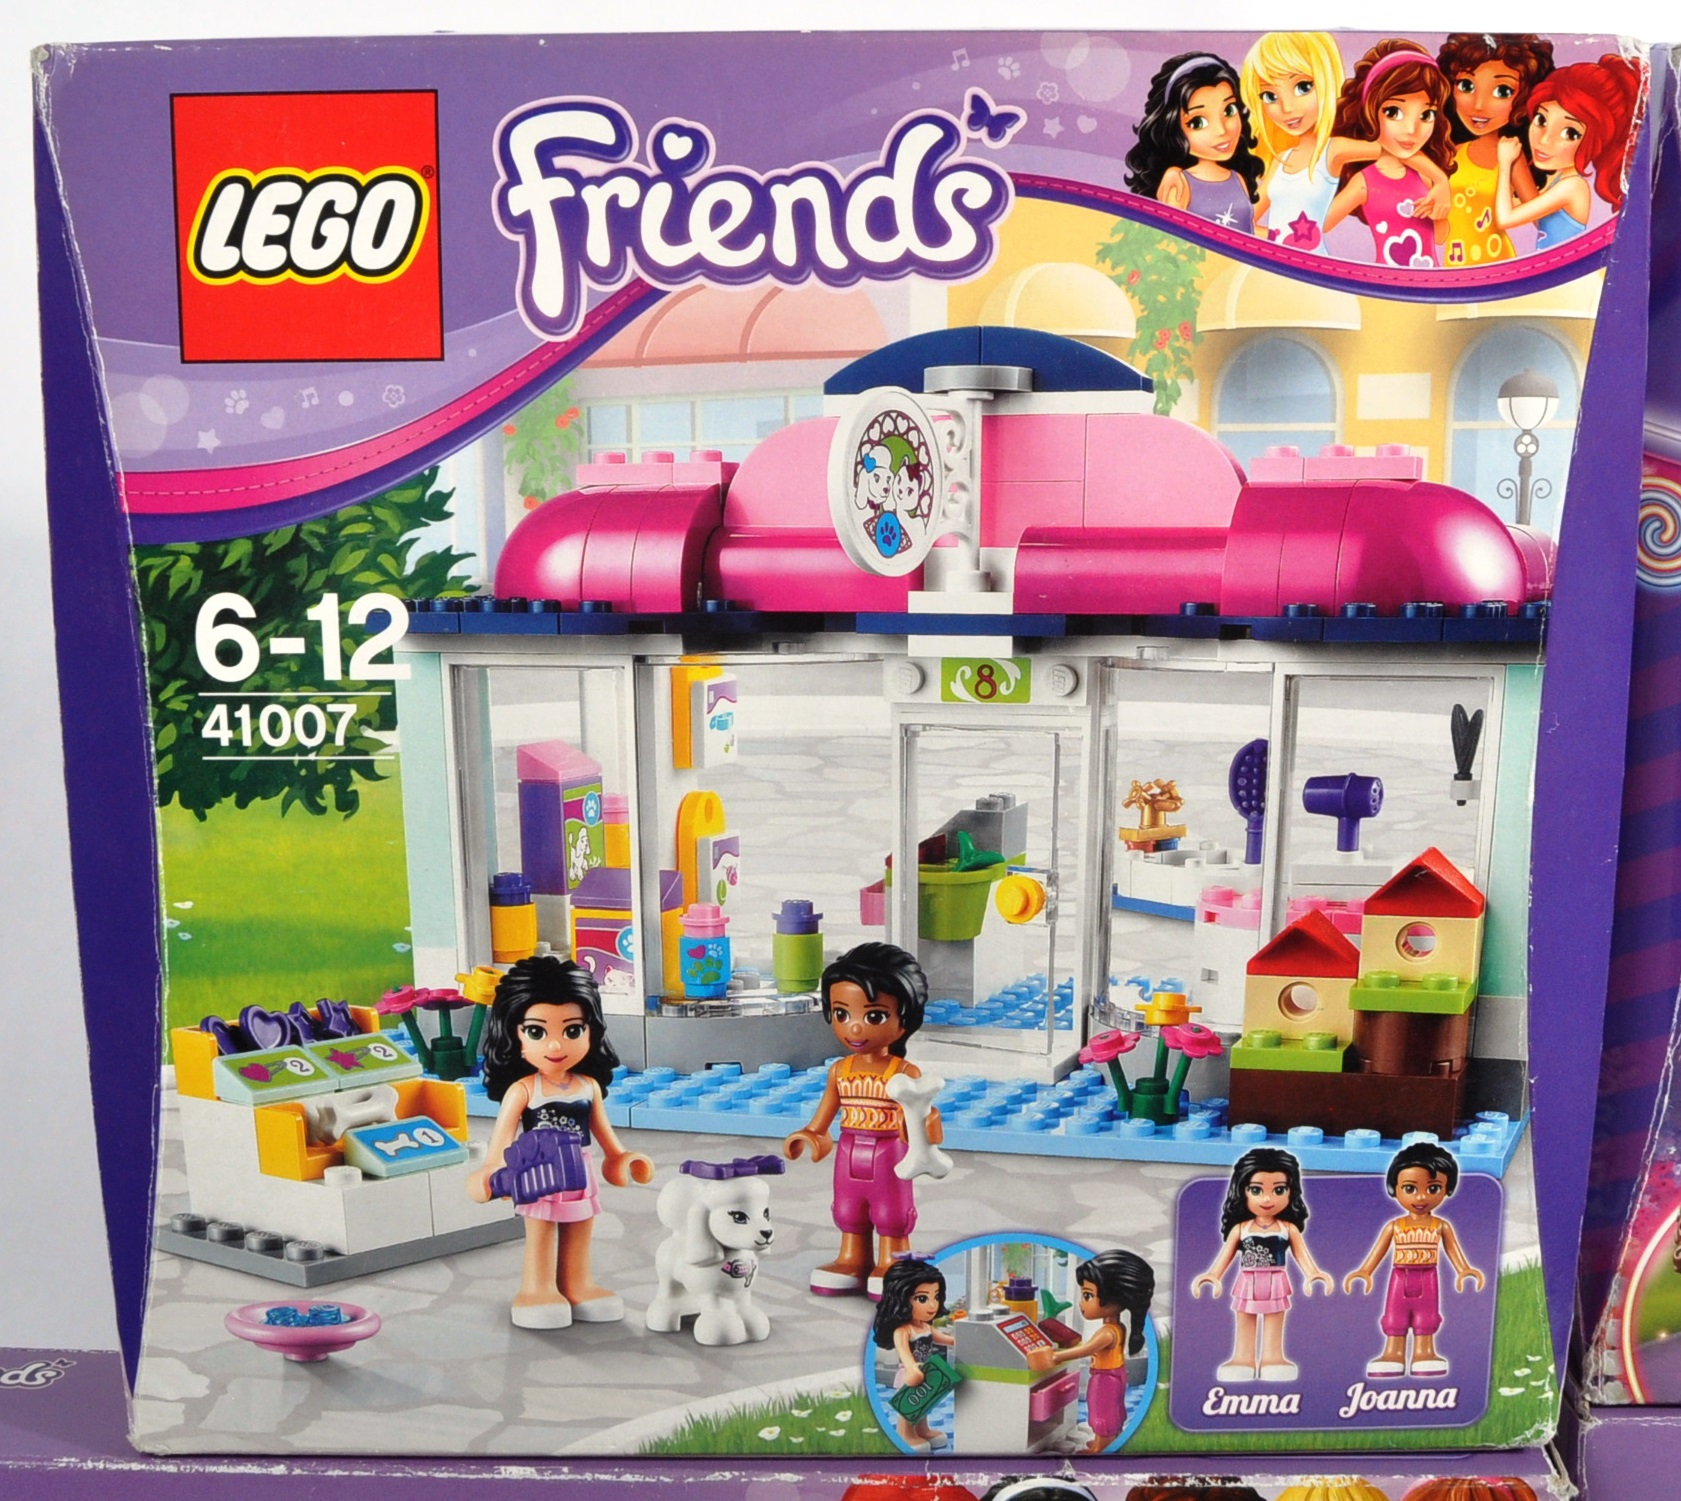 LEGO SETS - LEGO FRIENDS - COLLECTION OF X5 LEGO FRIENDS SETS - Image 3 of 6